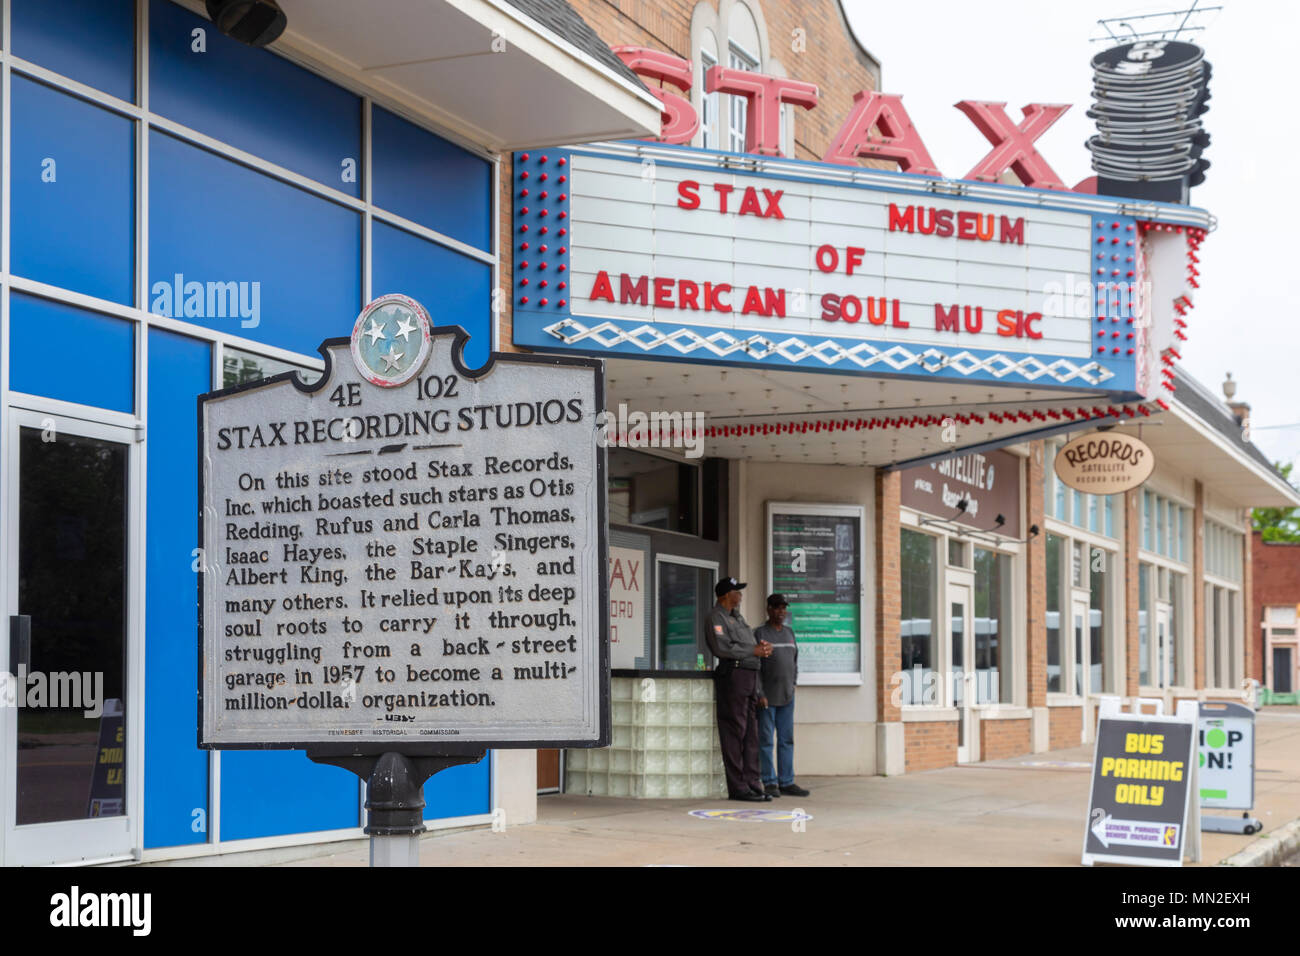 Memphis, Tennessee - The Stax Museum of American Soul Music, the former location of Stax Records. - Stock Image